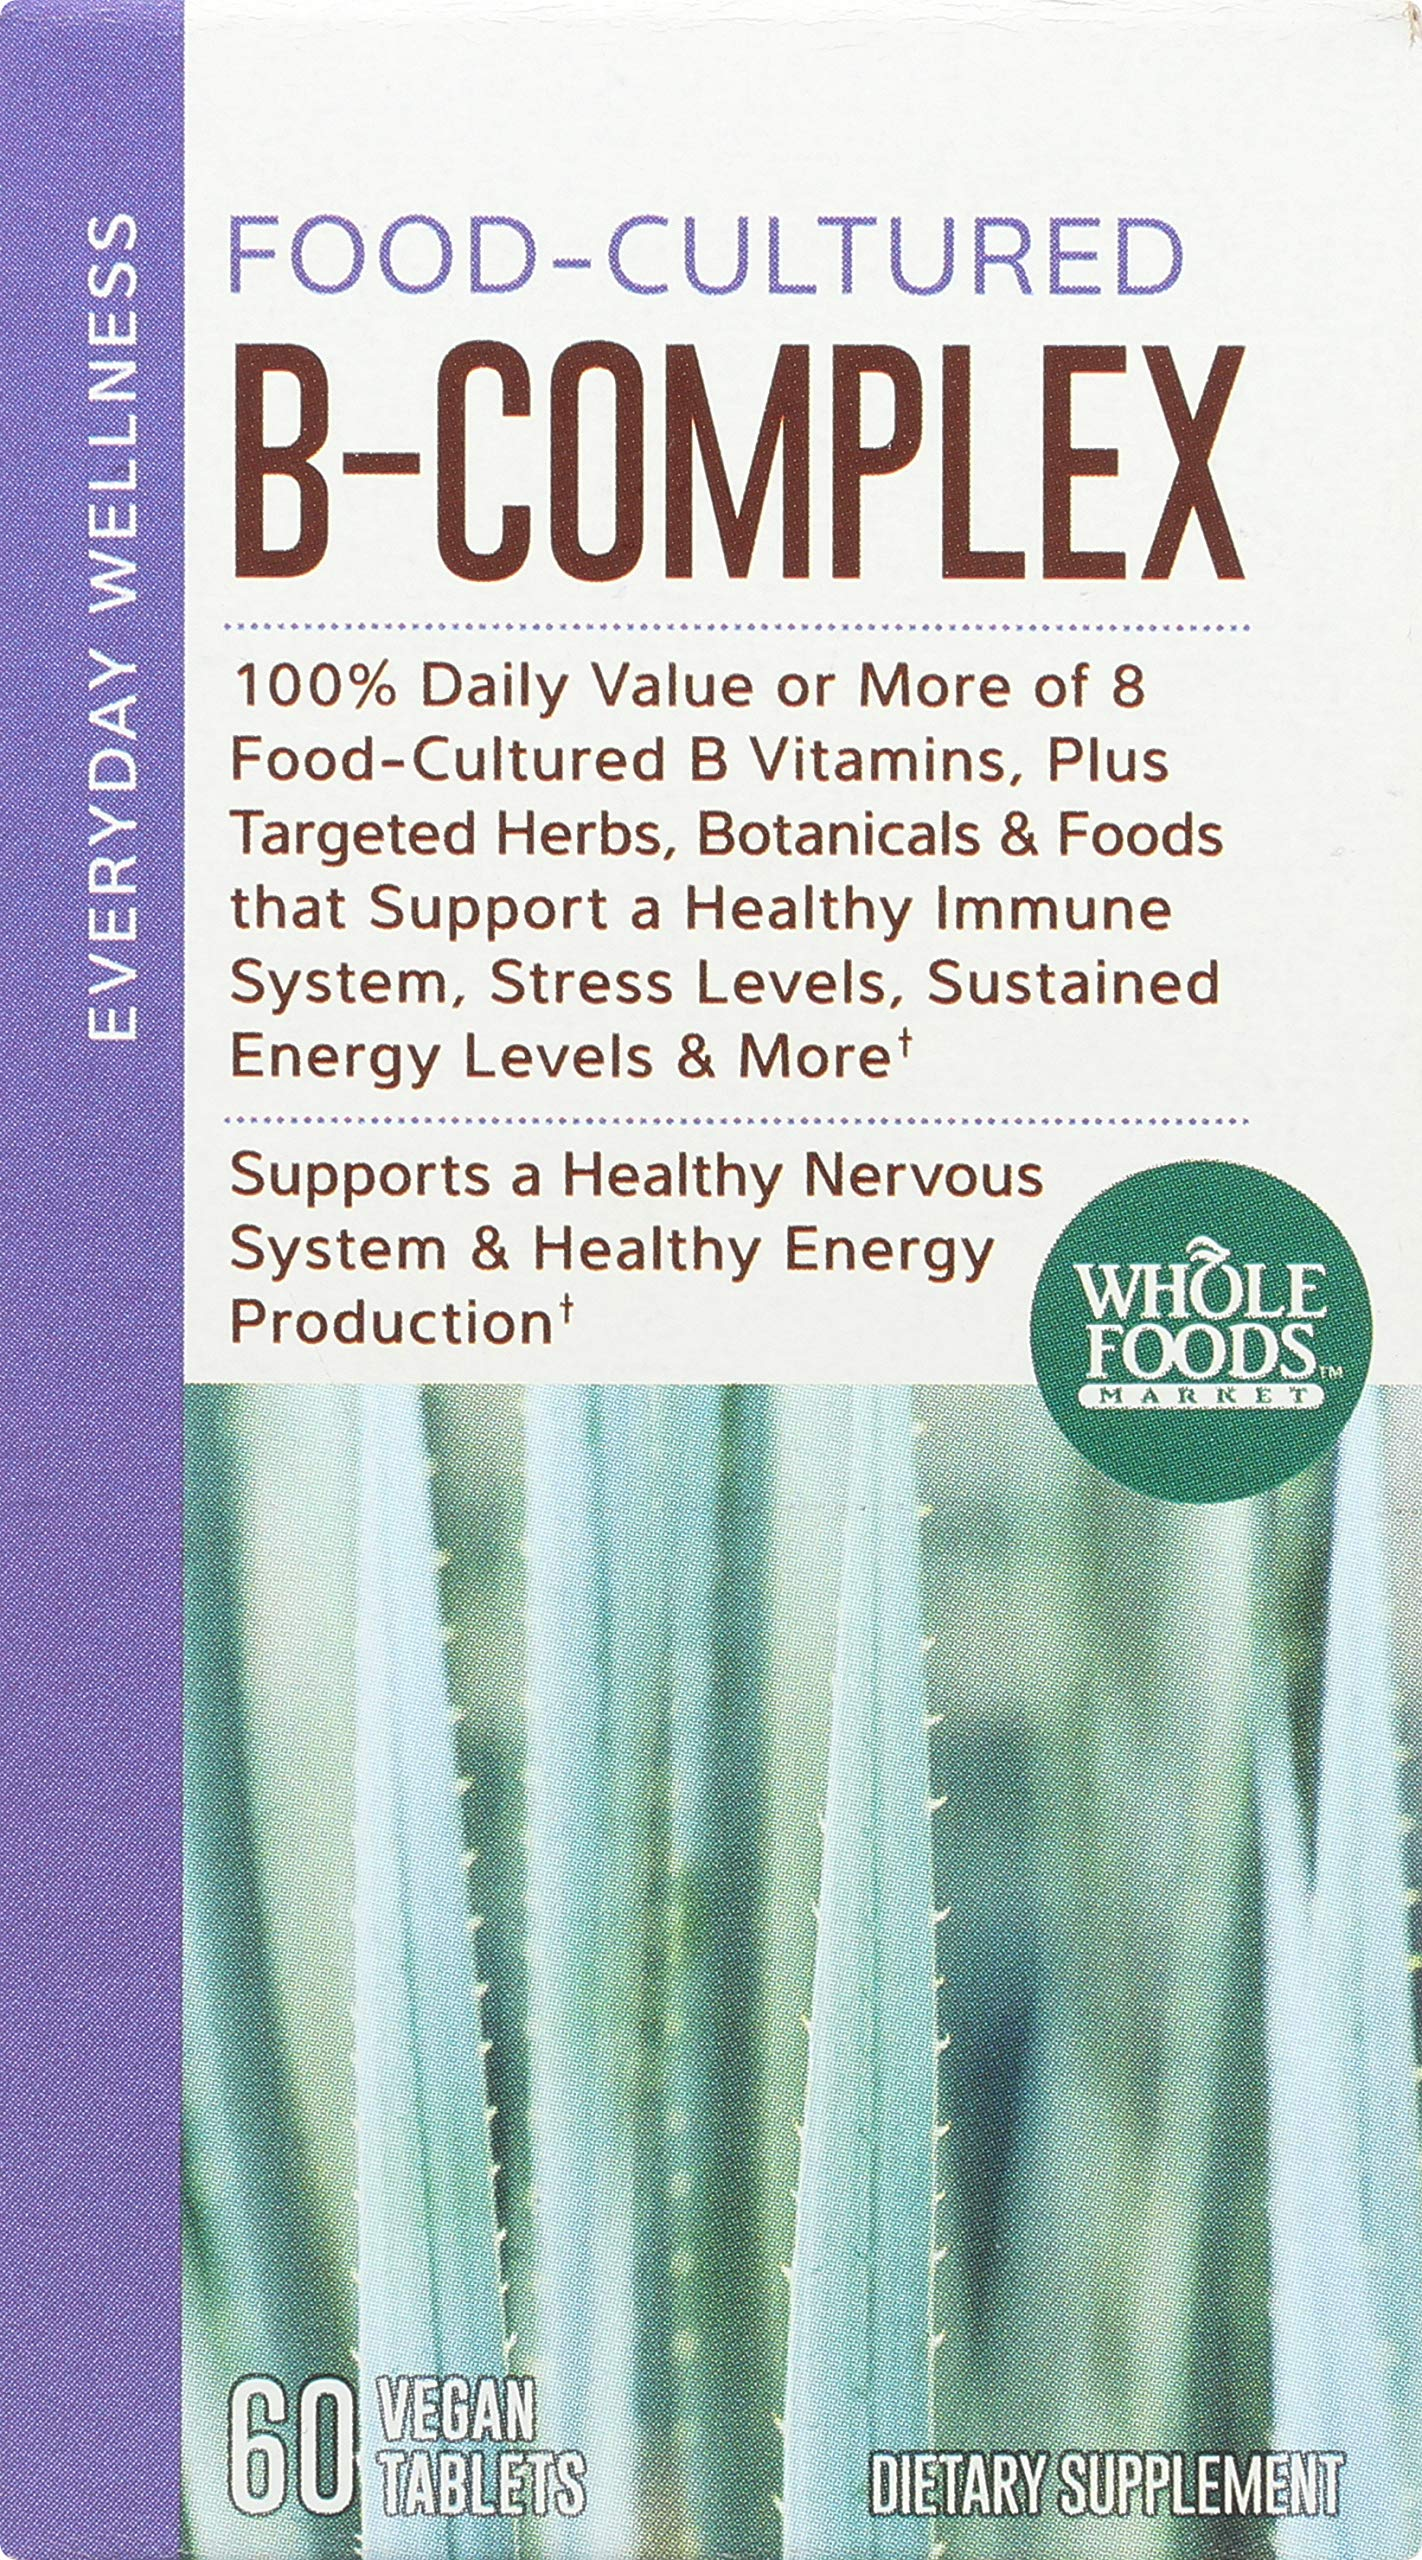 Whole Foods Market, Food-Cultured B-Complex, 60 ct